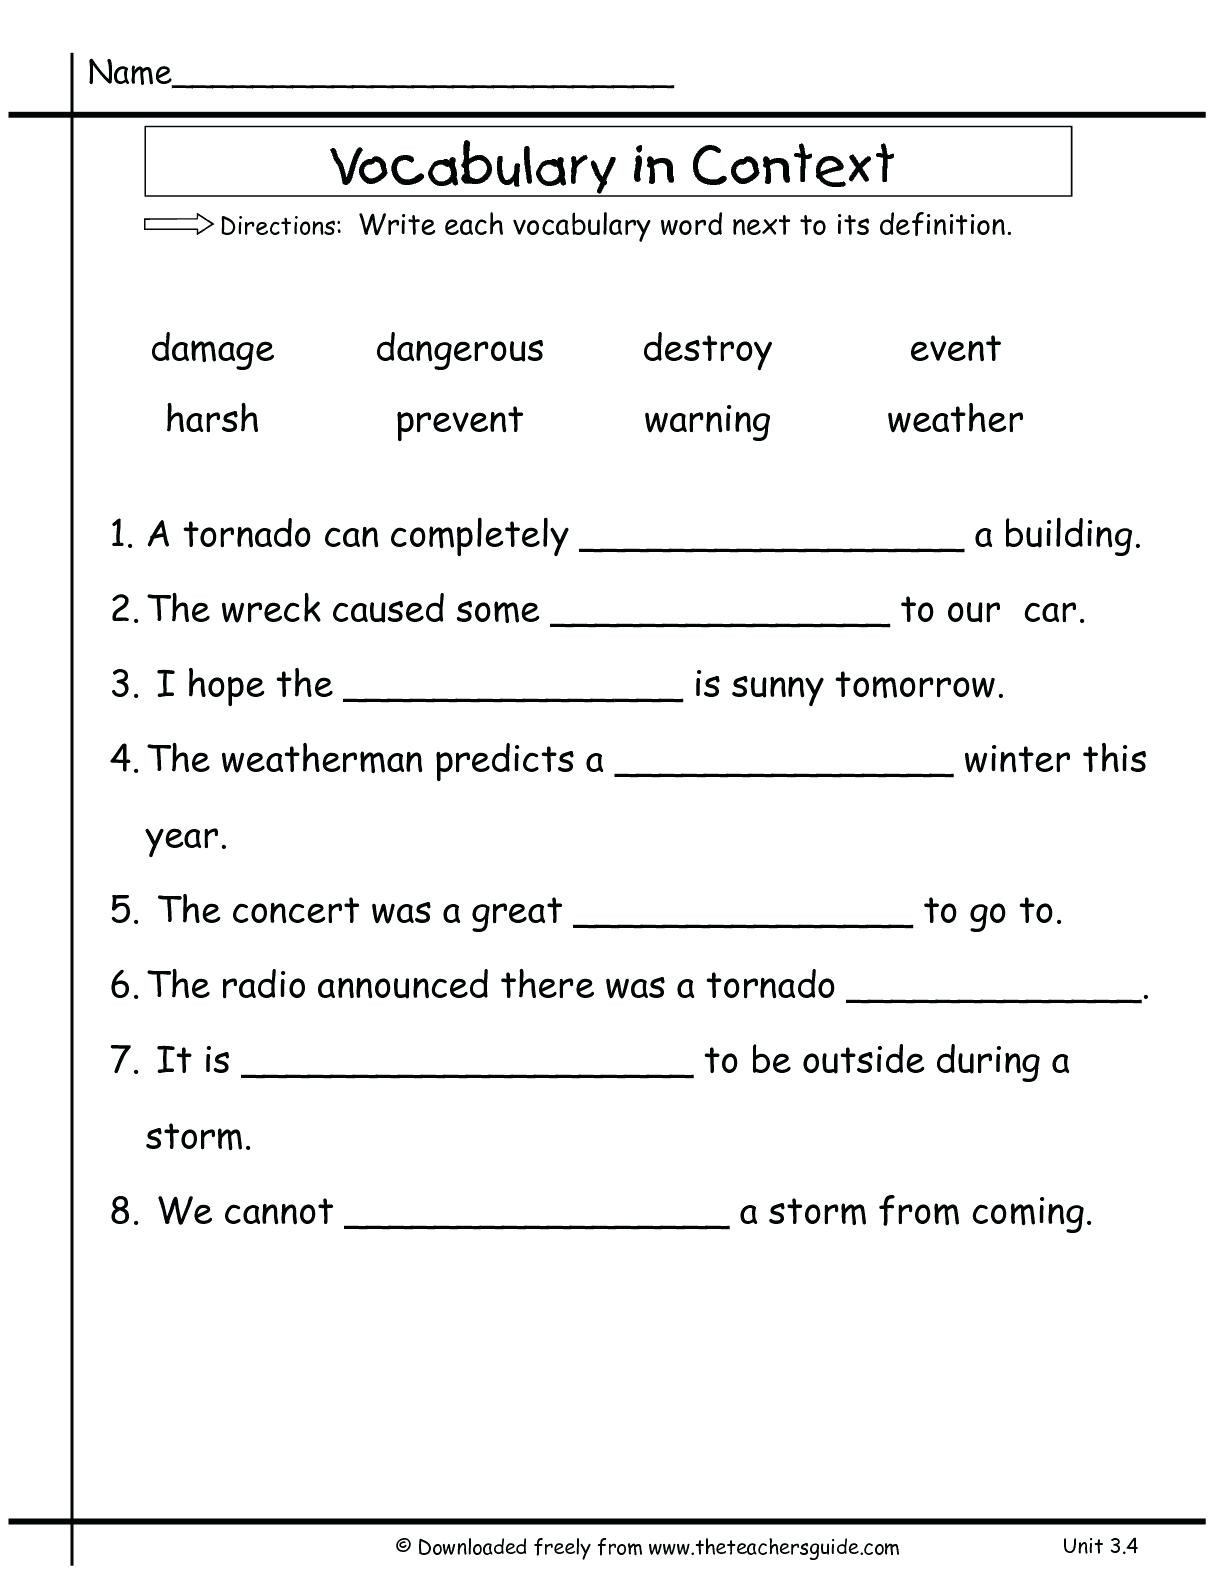 Context Clues Worksheets 2nd Grade 5th Grade Context Clues Worksheets these Context Clues